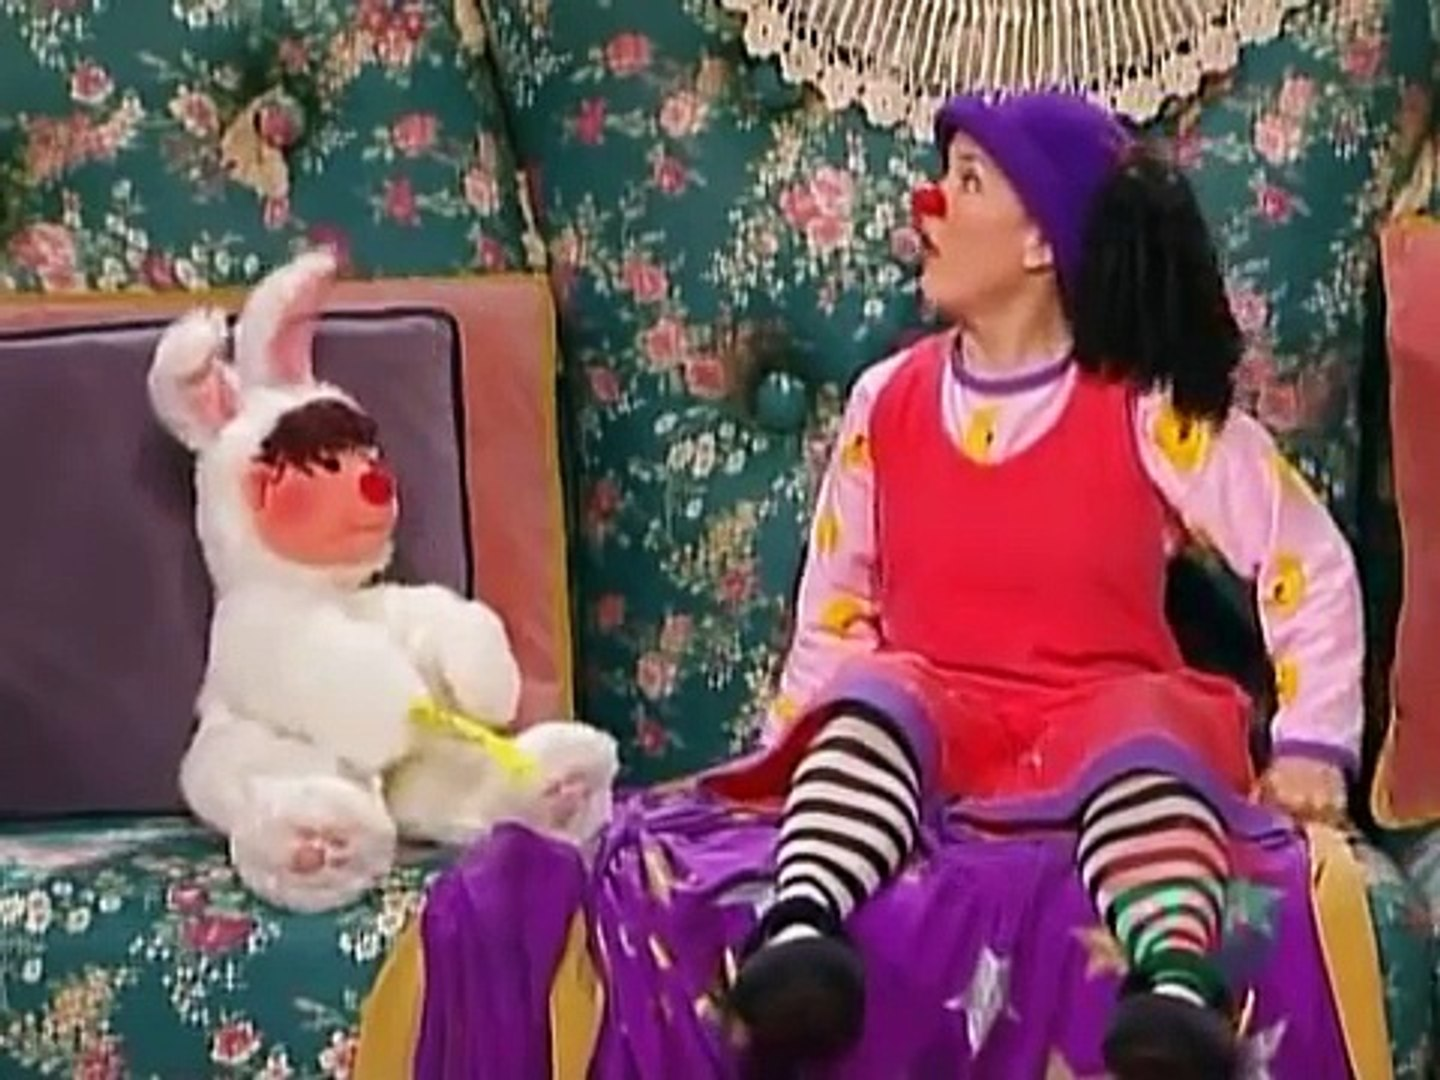 Big Couch Clown The Big Comfy Couch Clown With A Frown